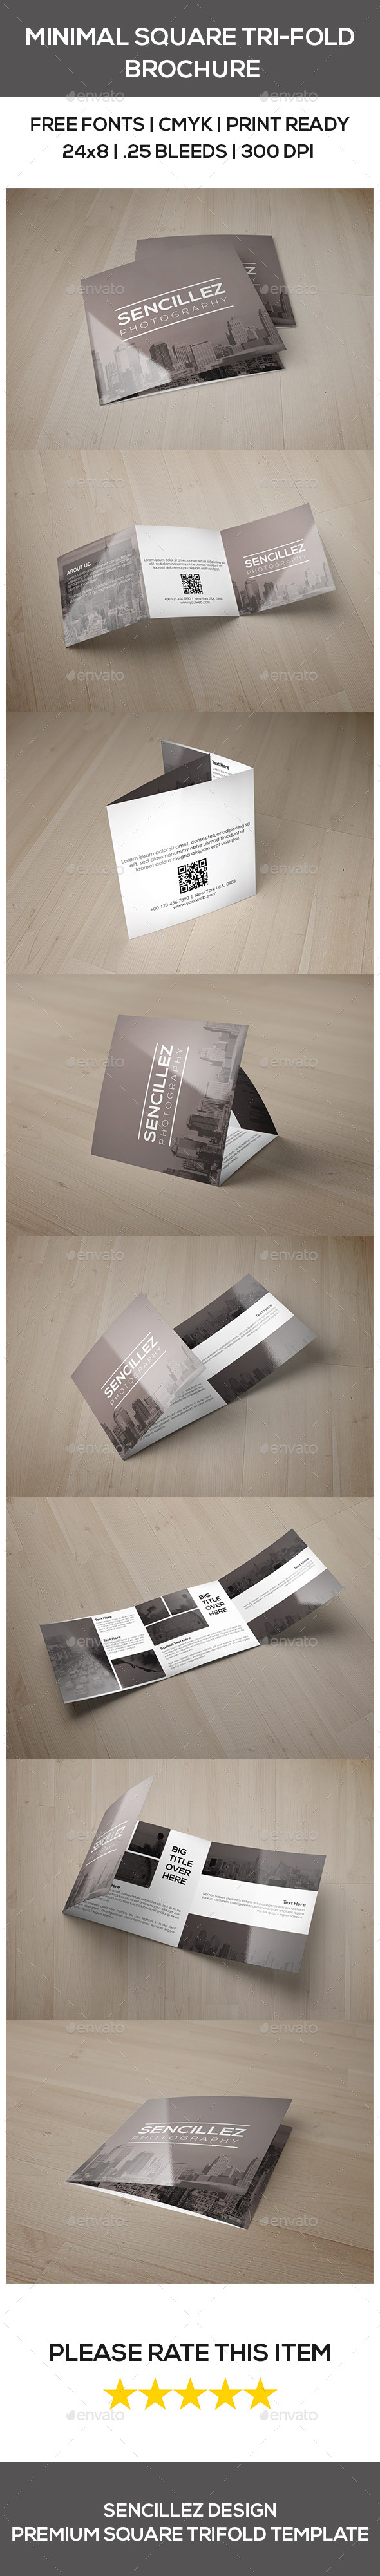 Minimal Square Tri-Fold Photography Brochure - Corporate Brochures